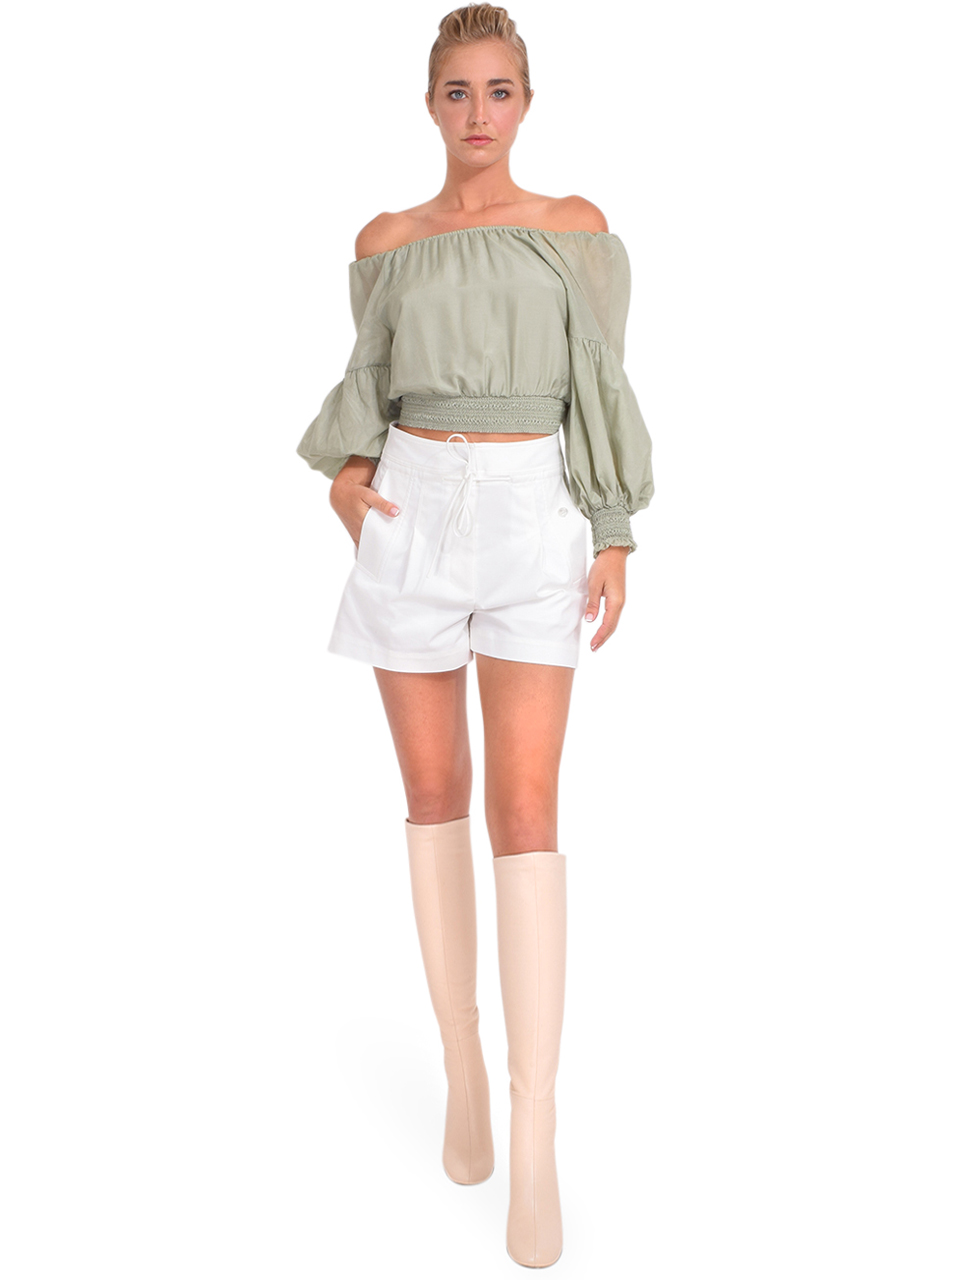 3.1 Phillip Lim Tie Waist Utility Short in Antique White Full Outfit